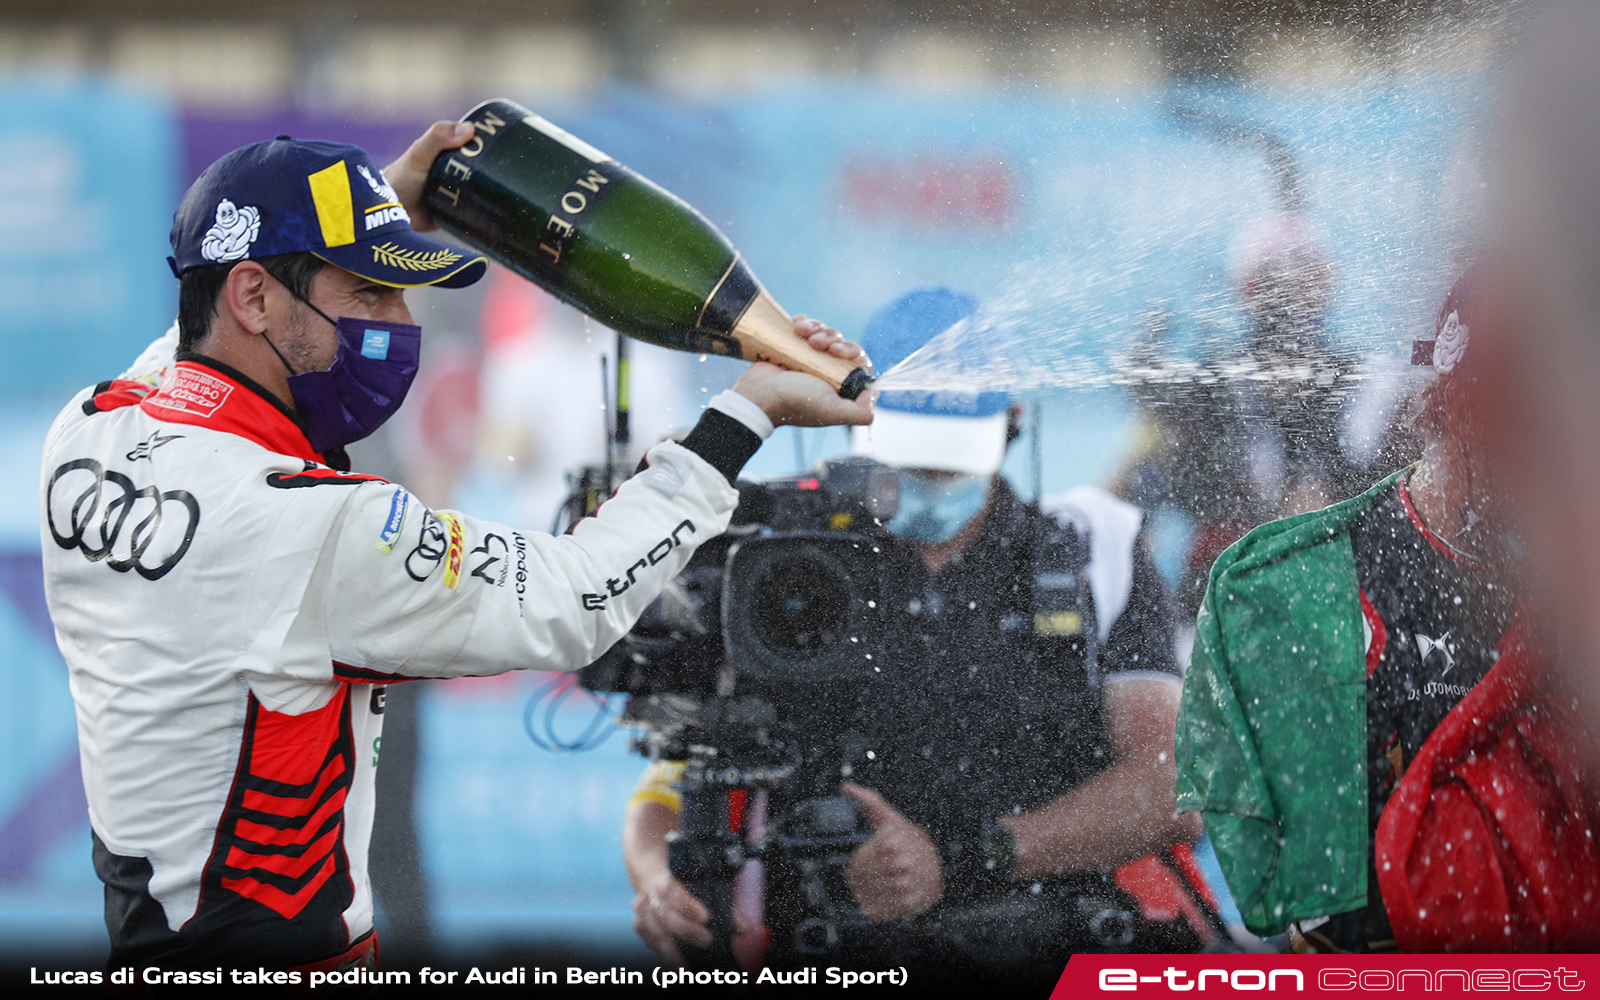 Lucas di Grassi Takes Podium for Audi in Berlin